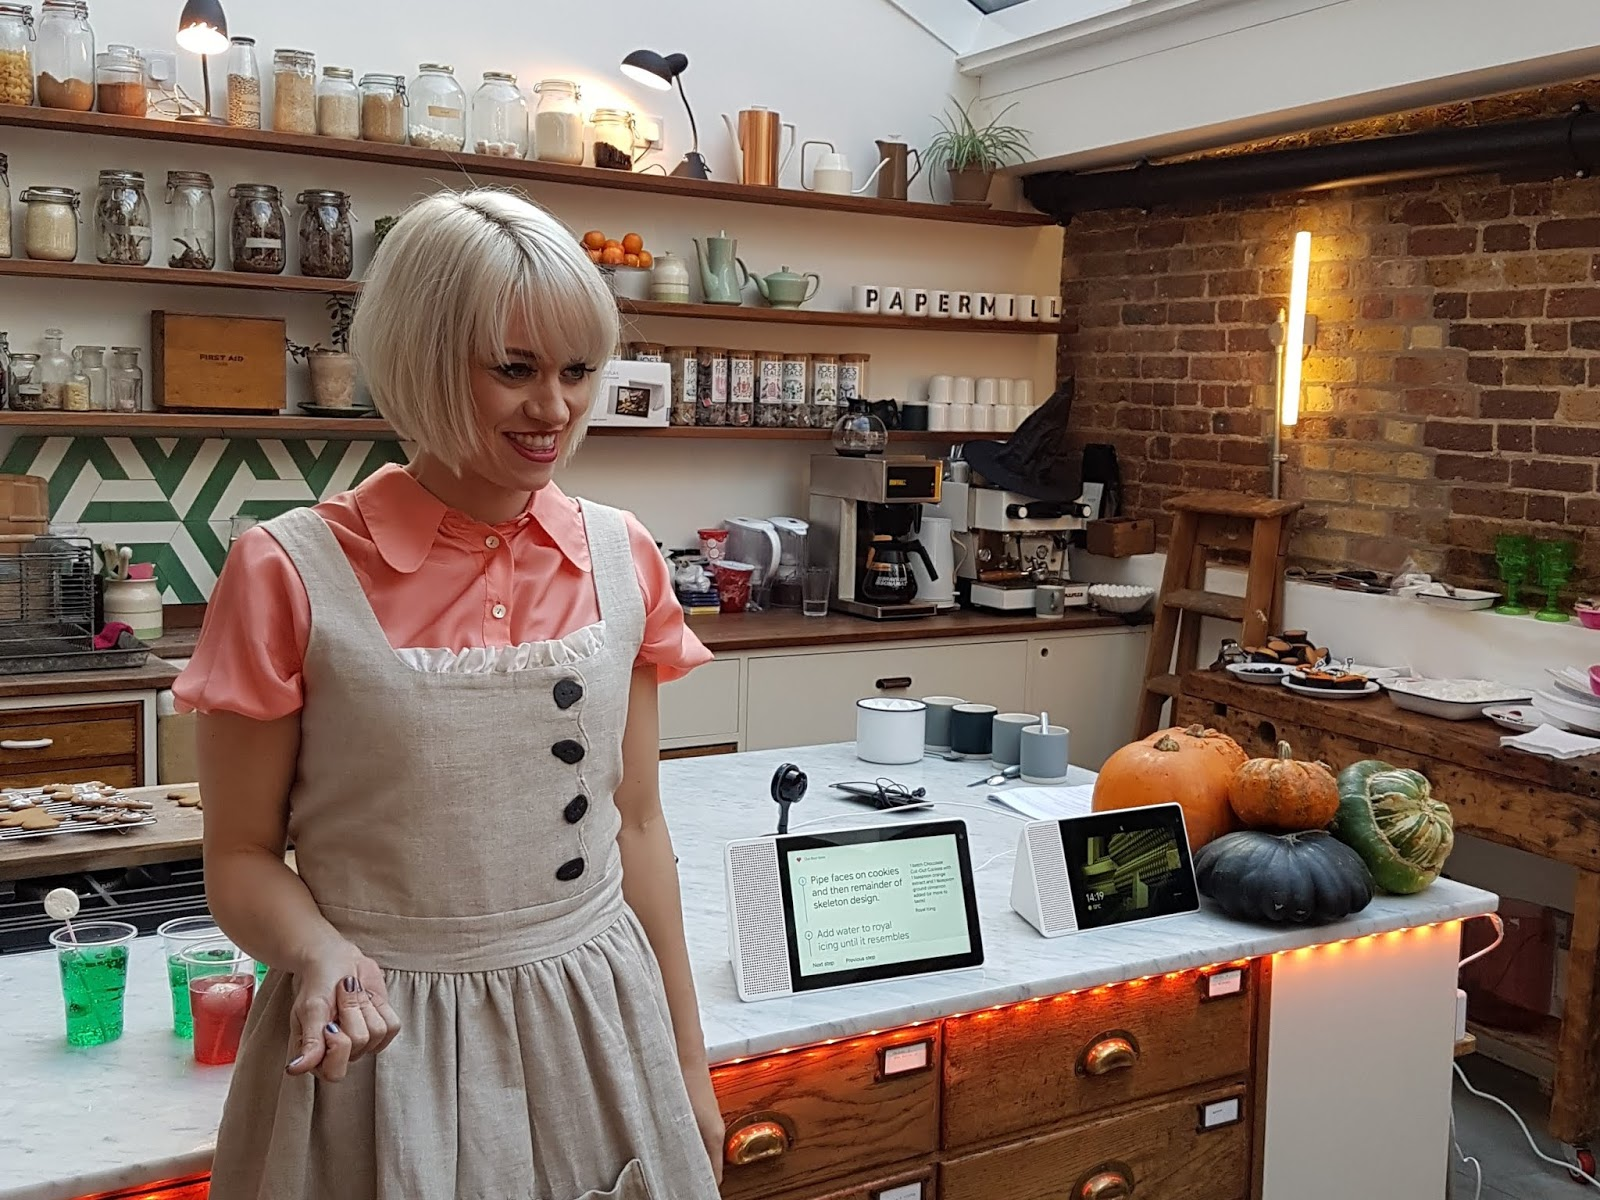 kimberly wyatt with lenovo smart display